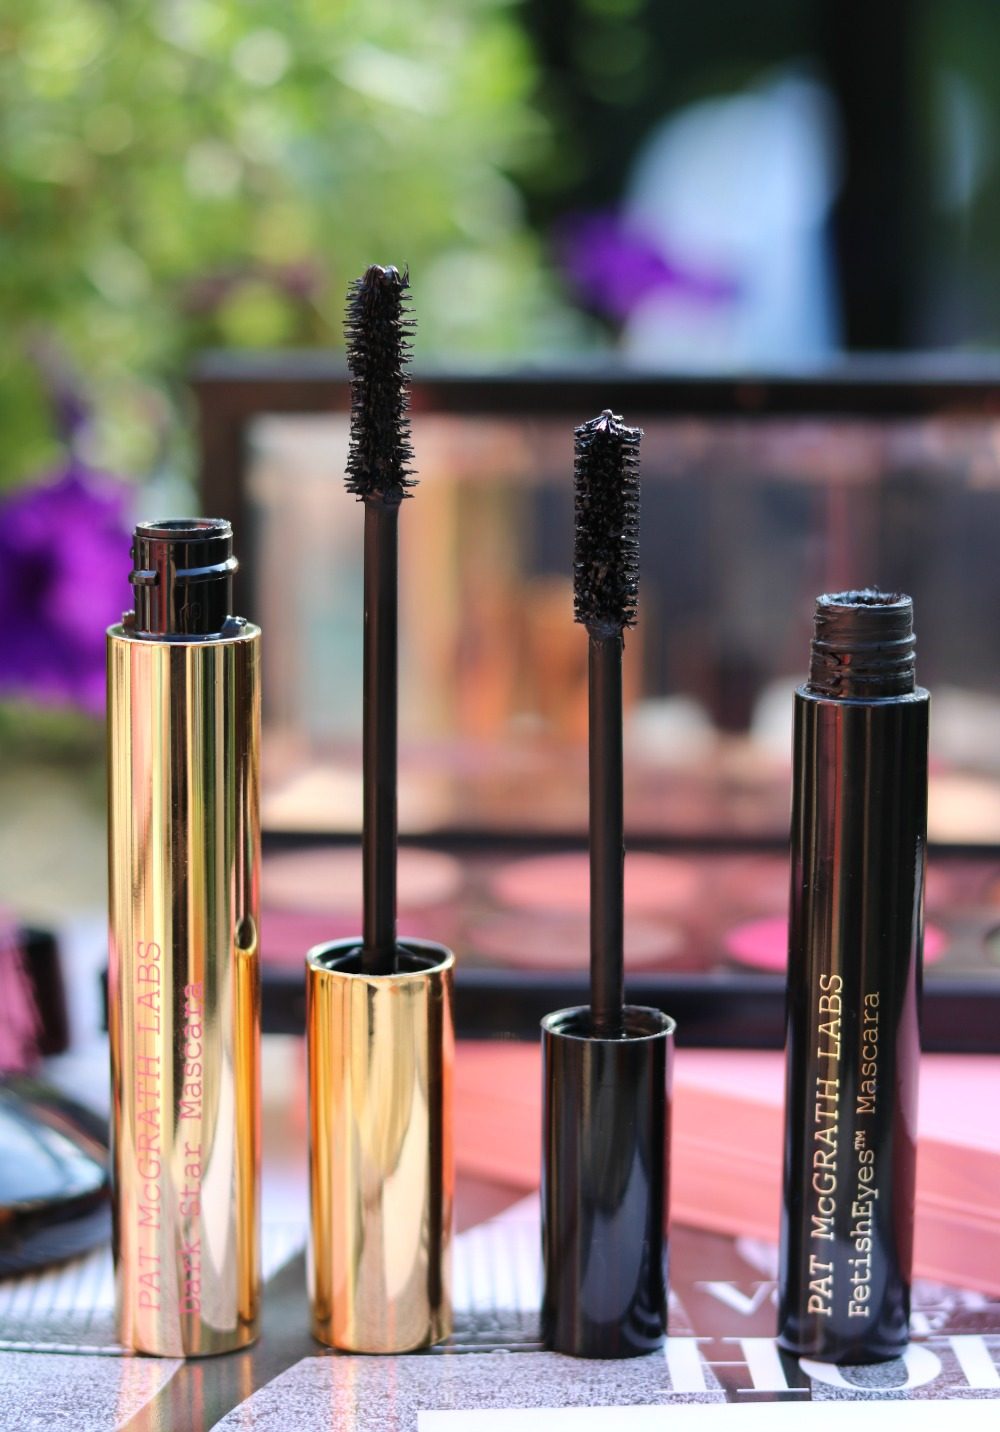 Pat McGrath Dark Star Mascara Review and Comparison I DreaminLace.com #BeautyTips #BeautyBlog